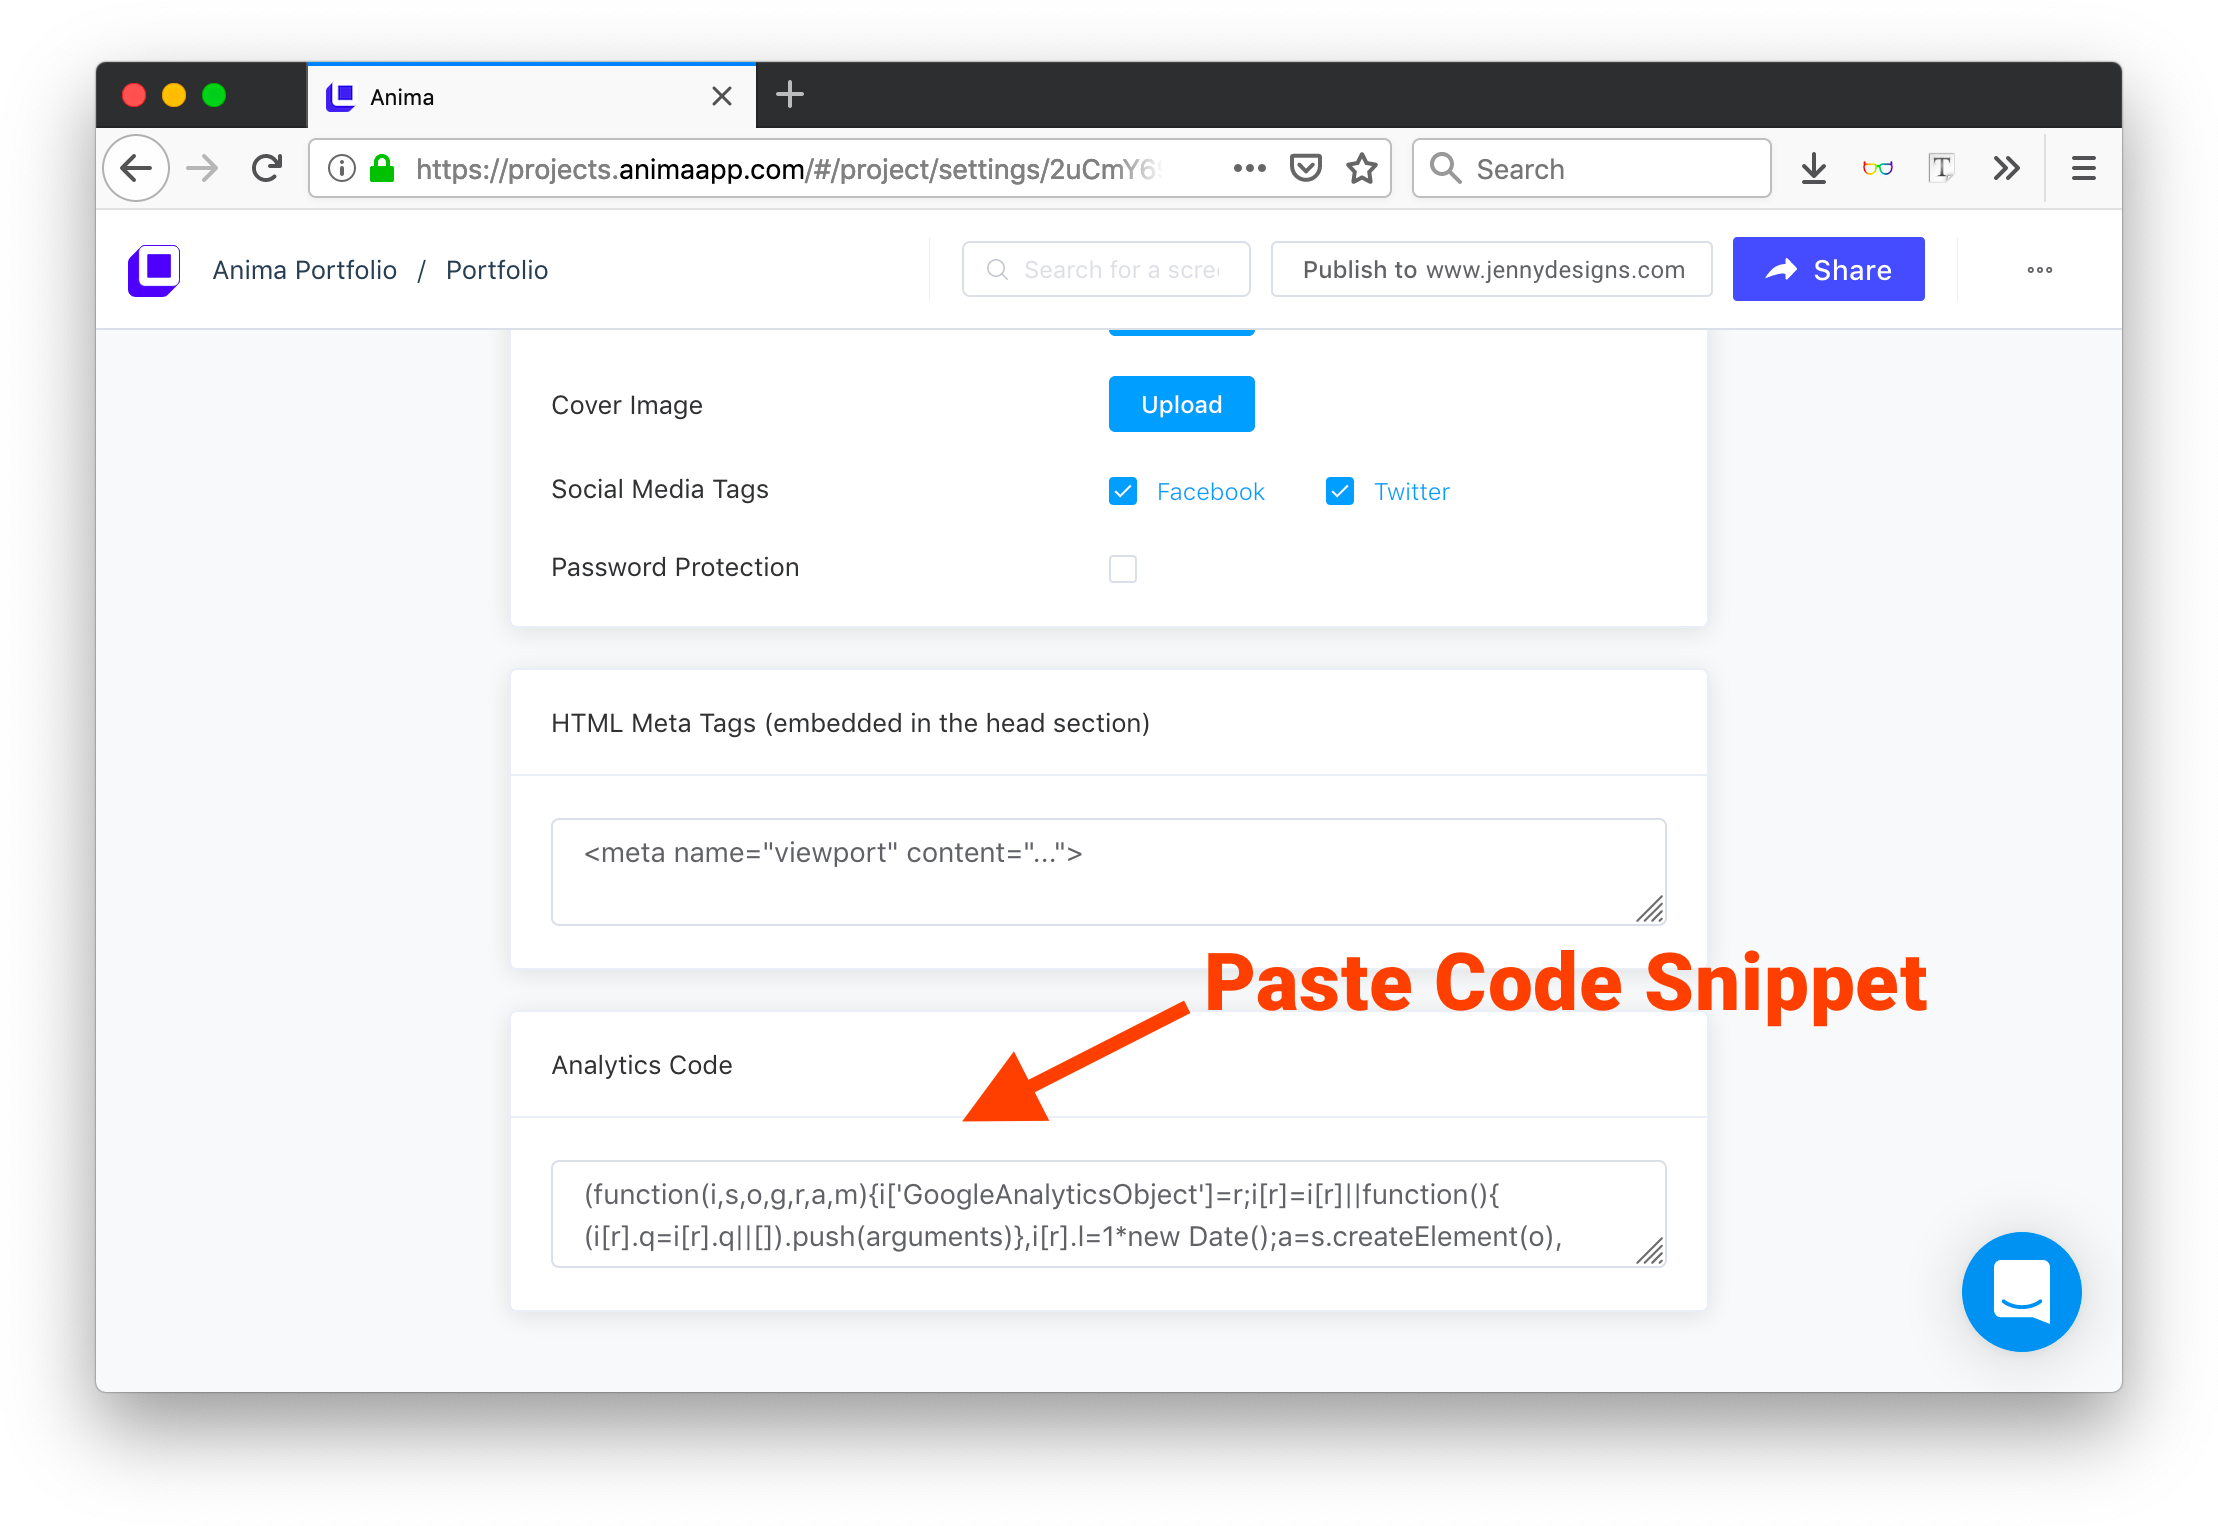 Paste Code Snippet